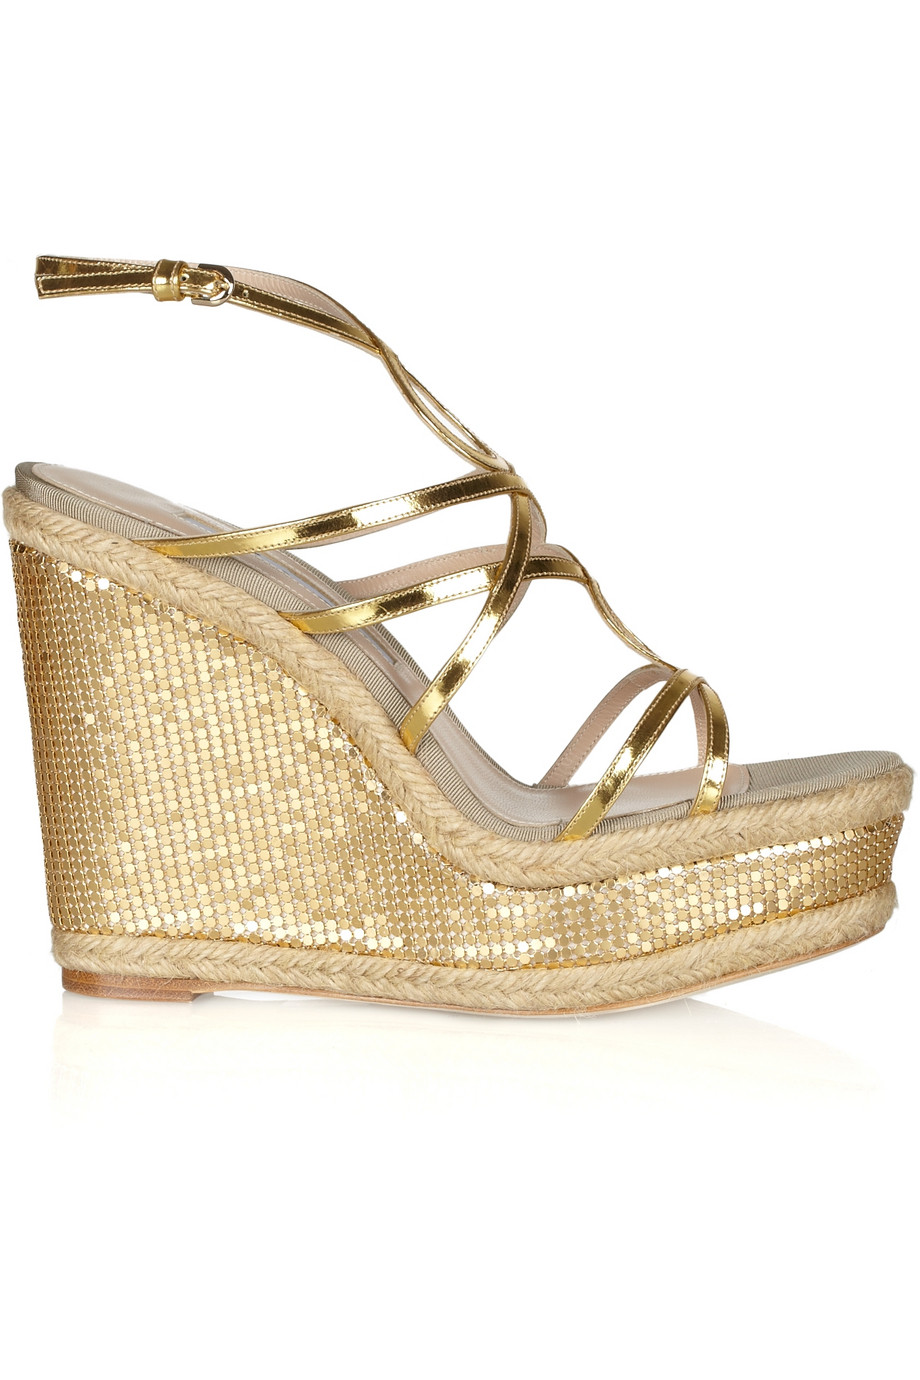 acf36944a Lyst - Brian Atwood Jourdan Chainmailcovered Rope Wedge Sandals in ...